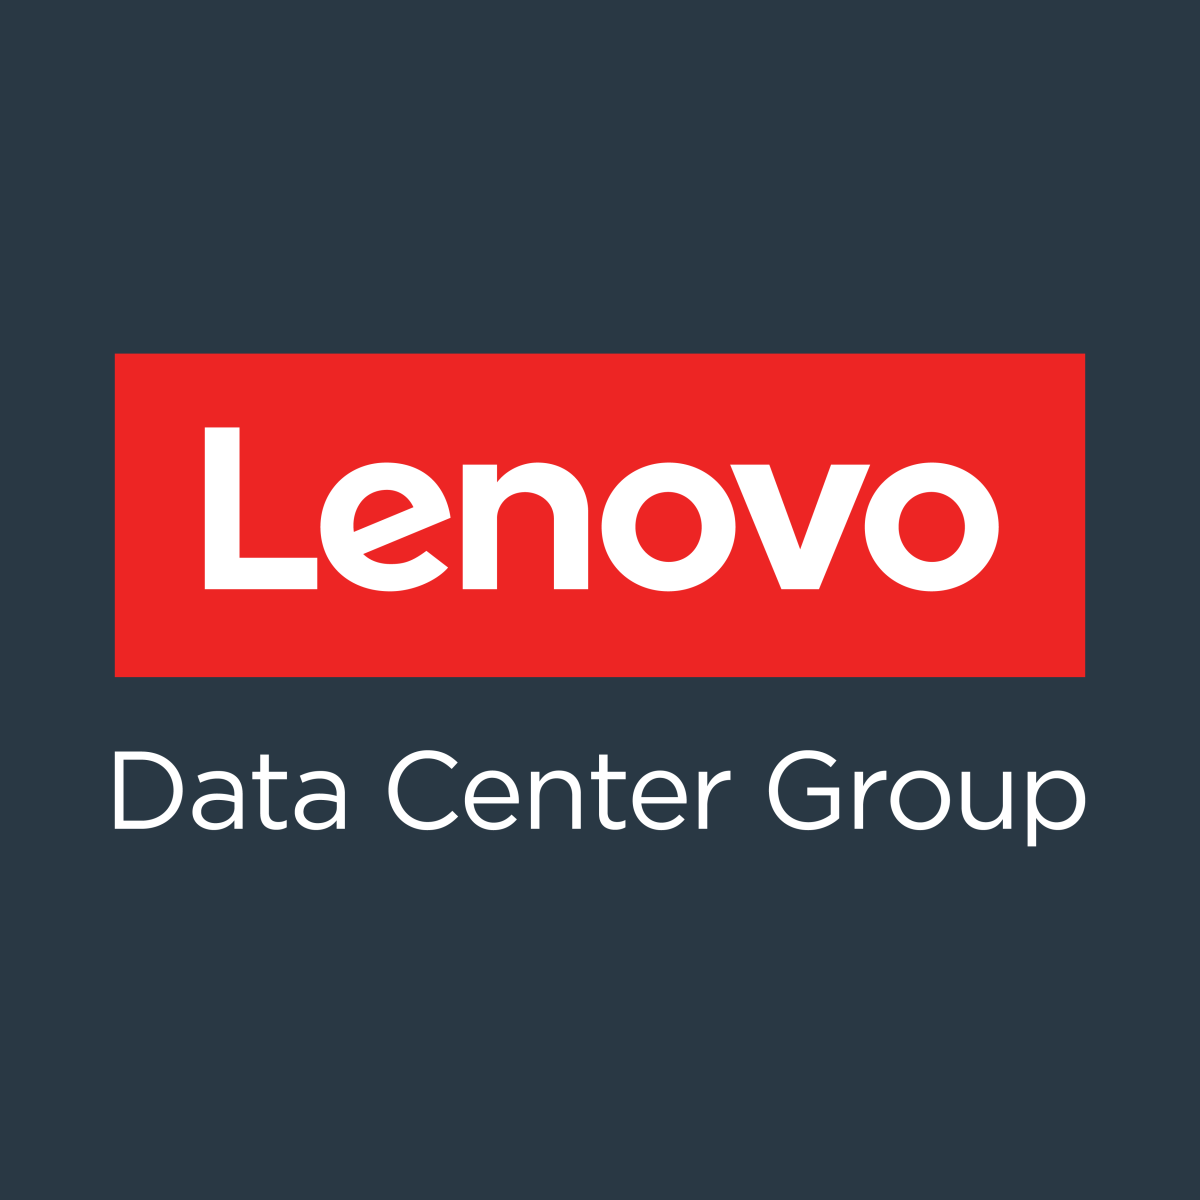 vector logo  lenovo data center  u2013 lauren speakman  graphic